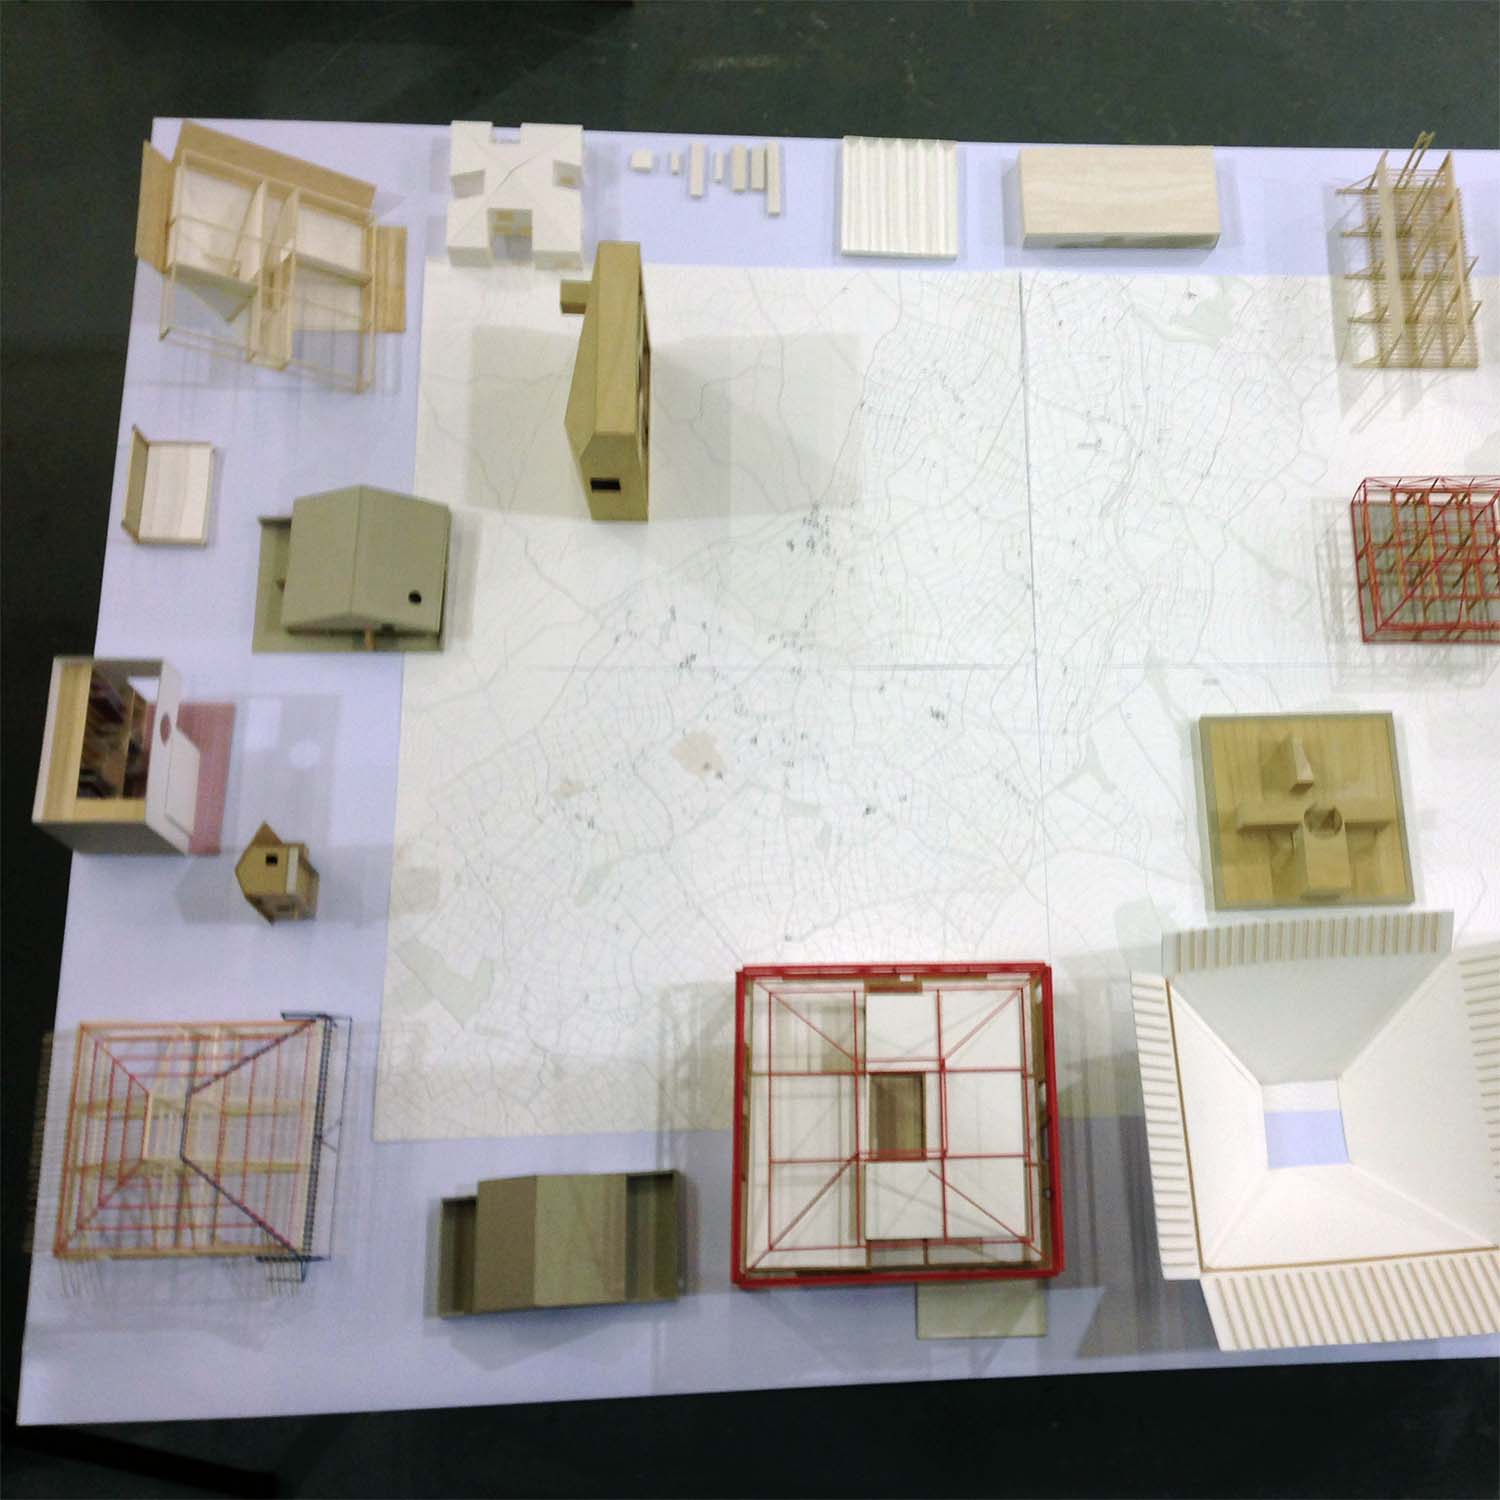 Spotlight on RMIT's practice-based research program in Europe    Web Content Newsletter for RMIT University   RMIT's practice-based PhD research program, which focuses on research in the medium of design practice itself, is in its tenth year of success in Europe.